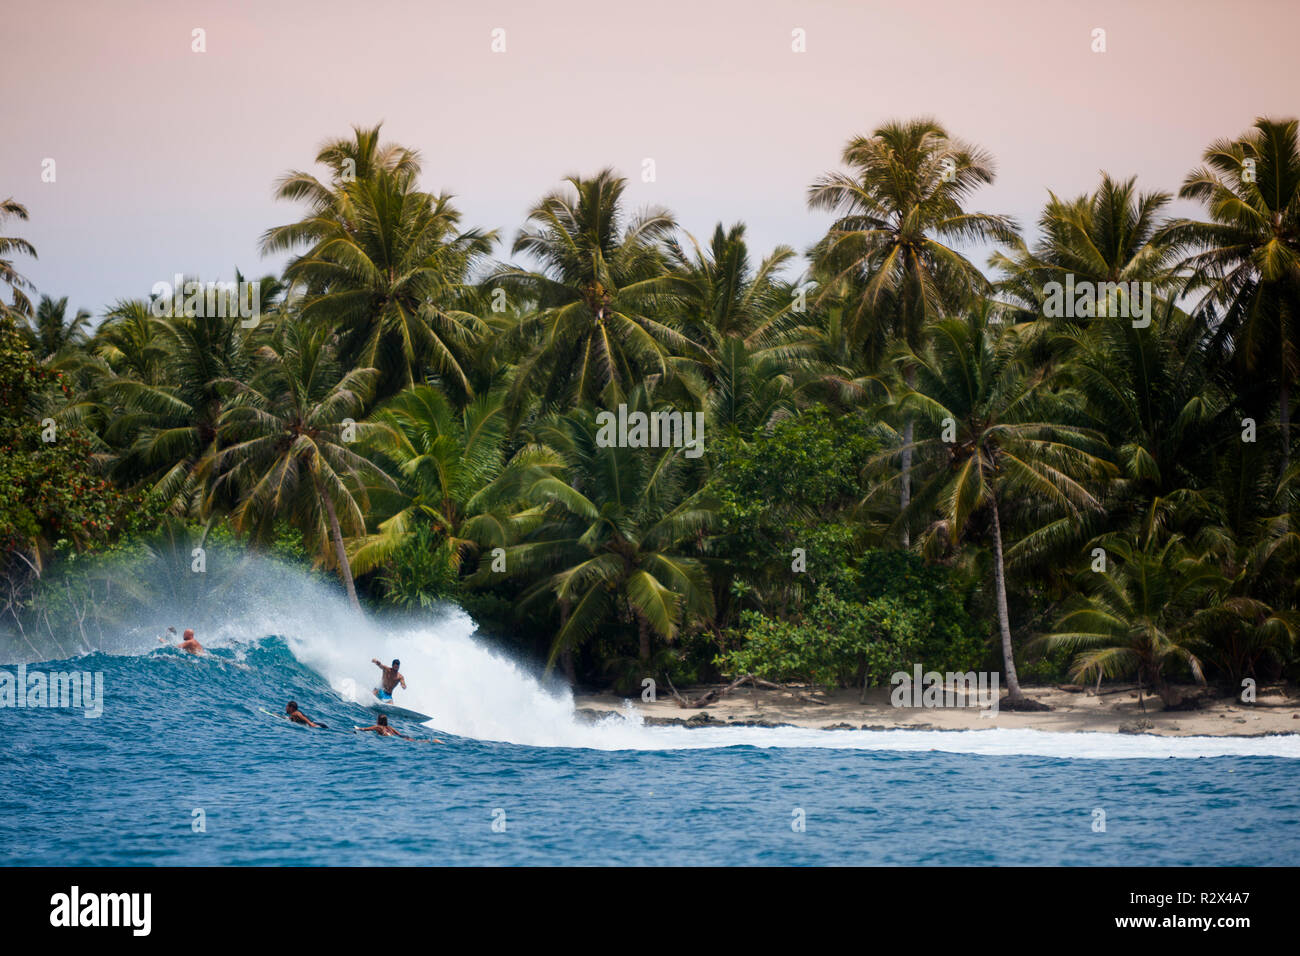 Surfer on a wave in the Mentawi Islands (South Siberut). - Stock Image